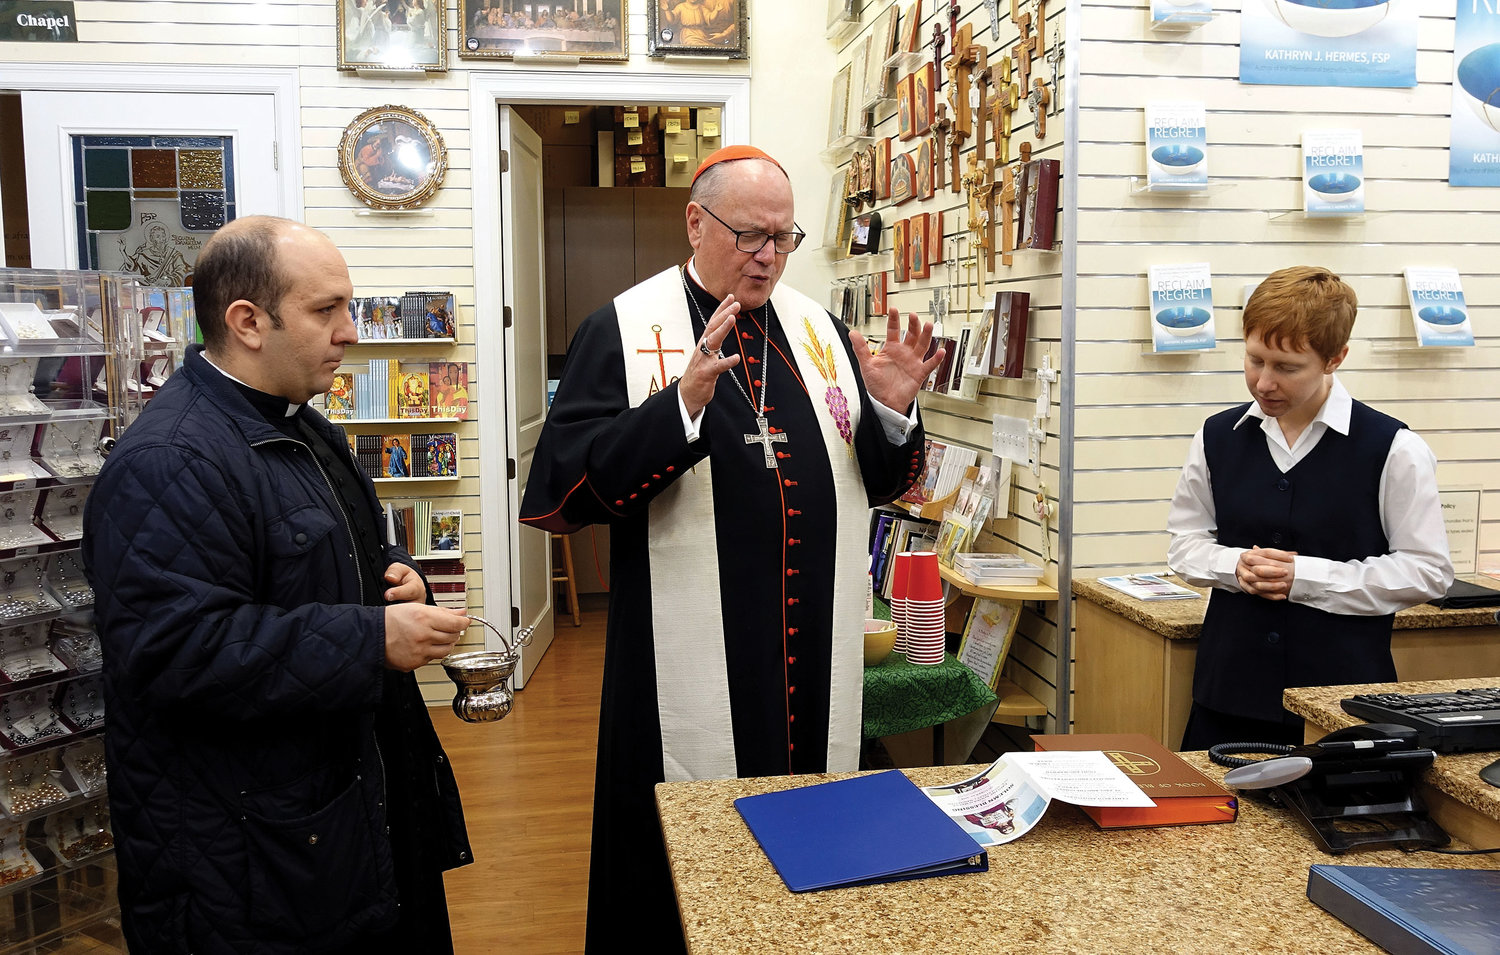 Cardinal Dolan blesses the new Pauline Book & Media Center in Manhattan Oct. 22, as Sister Amanda Detry, F.S.P., a novice with the Daughters of St. Paul, looks on. Assisting the cardinal at left is his priest secretary, Father James Ferreira.